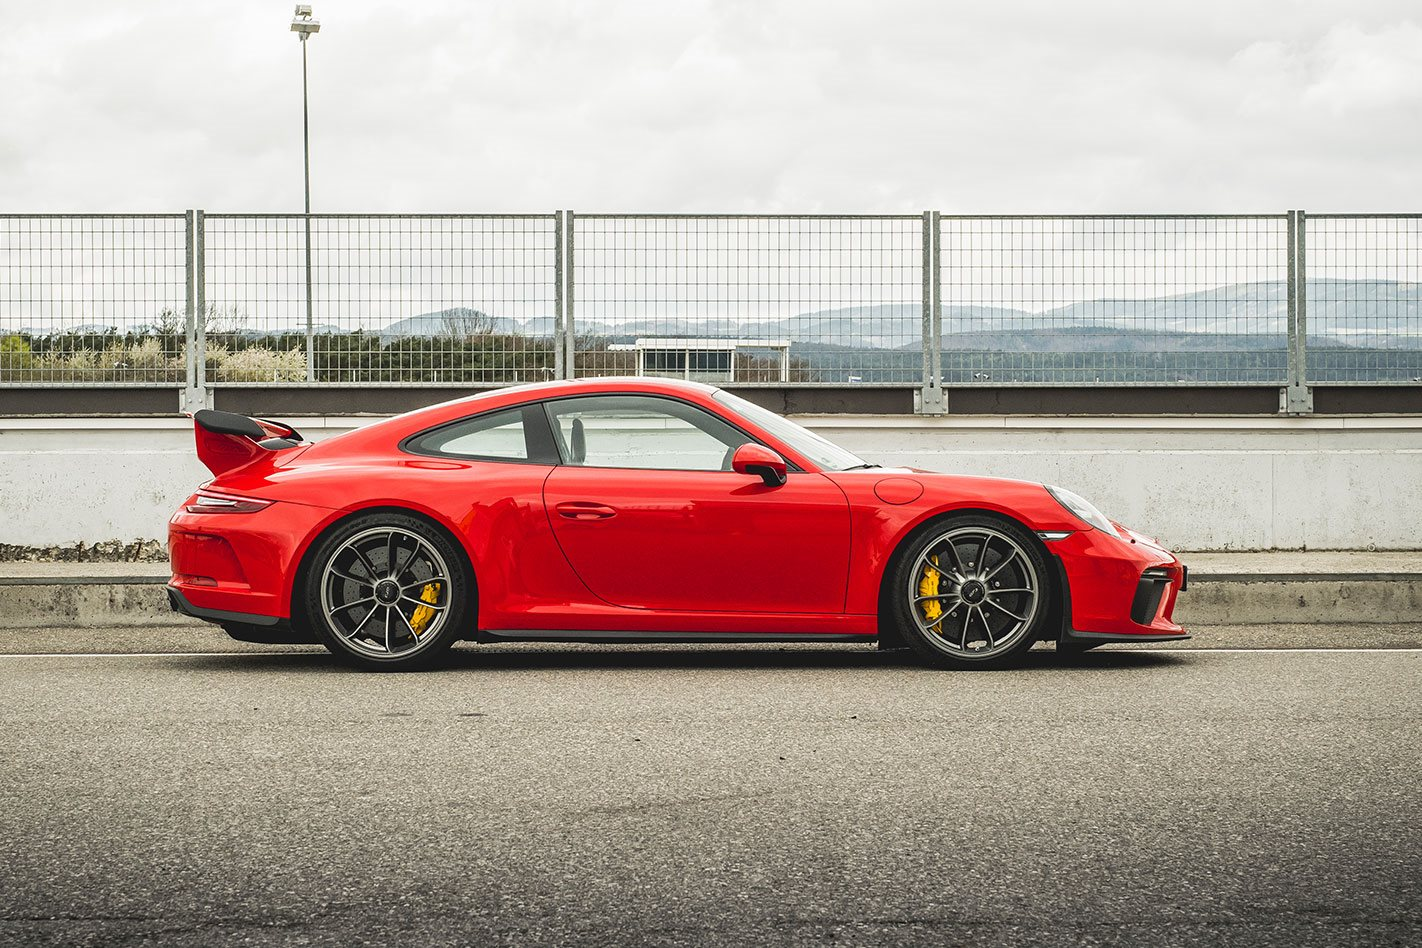 Porsche 911 GT3 side profile